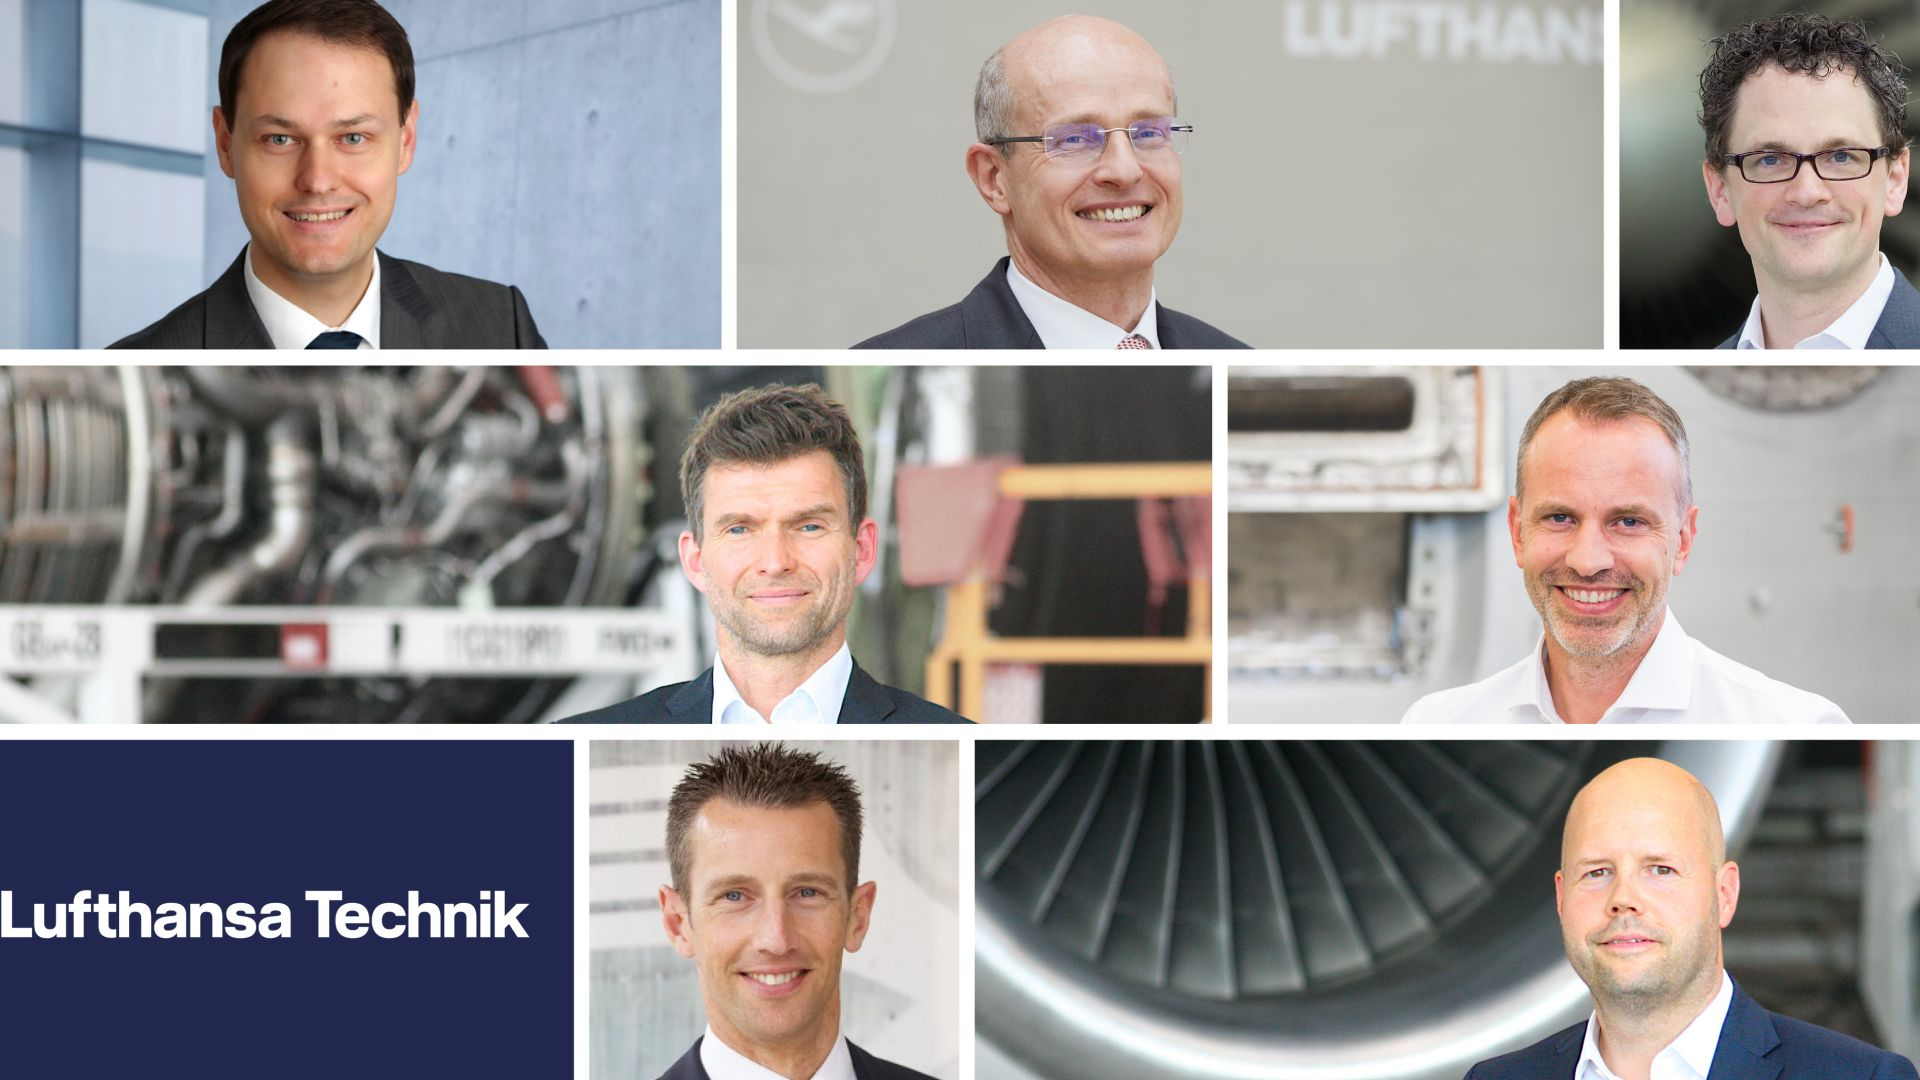 Lufthansa Technik - Personnel Changes Spring 2020